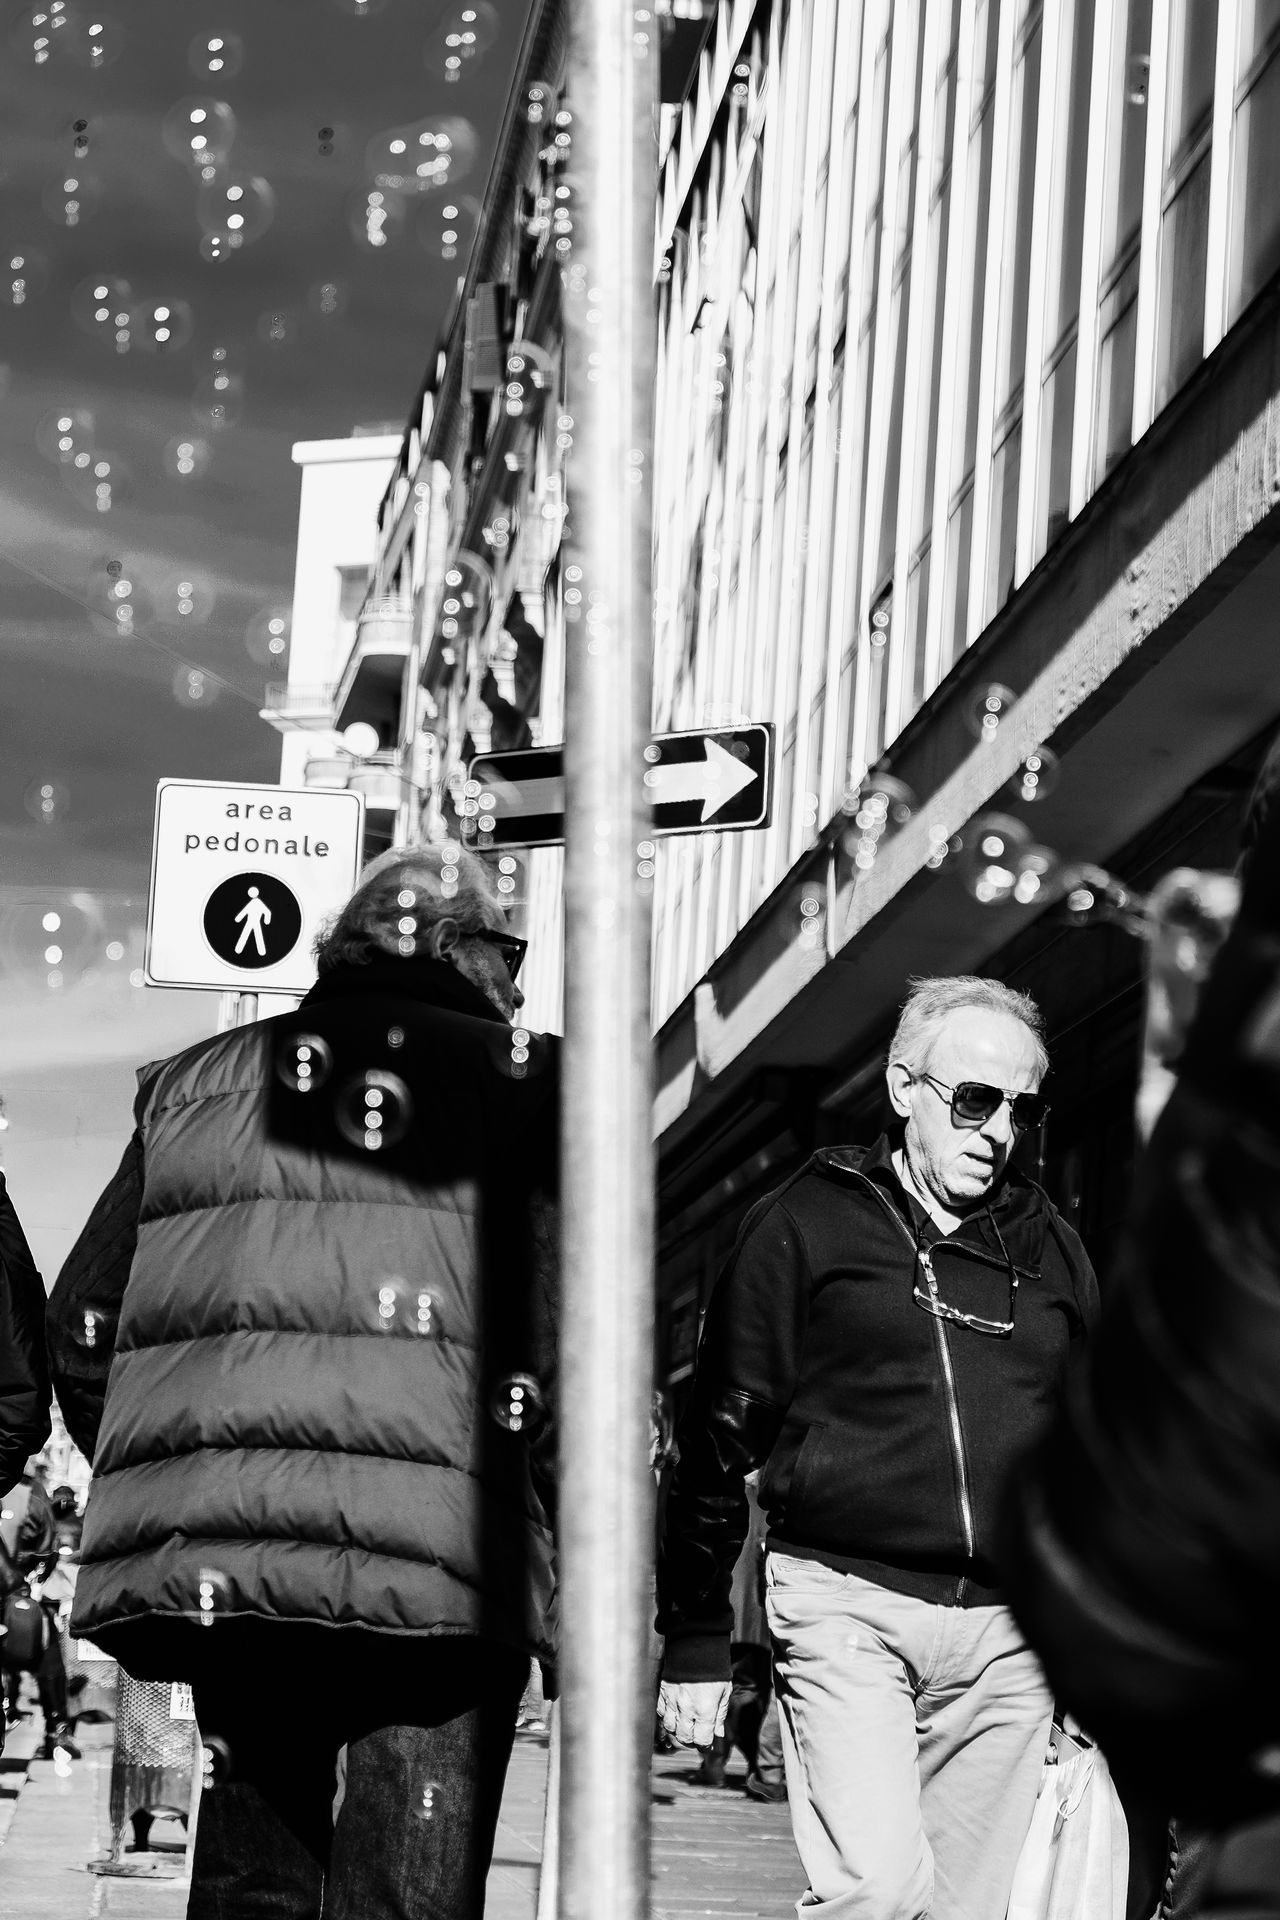 One Way Adult Adults Only Bubble Day EyeEm Best Shots EyeEm Streets From My Point Of View Hardhat  Headwear Men NEM Black&white NEM Street One Way Only Men Outdoors People Protective Workwear Real People Separation Shootermag Sky Street Streetphotography Two People Uniform EyeEmNewHere